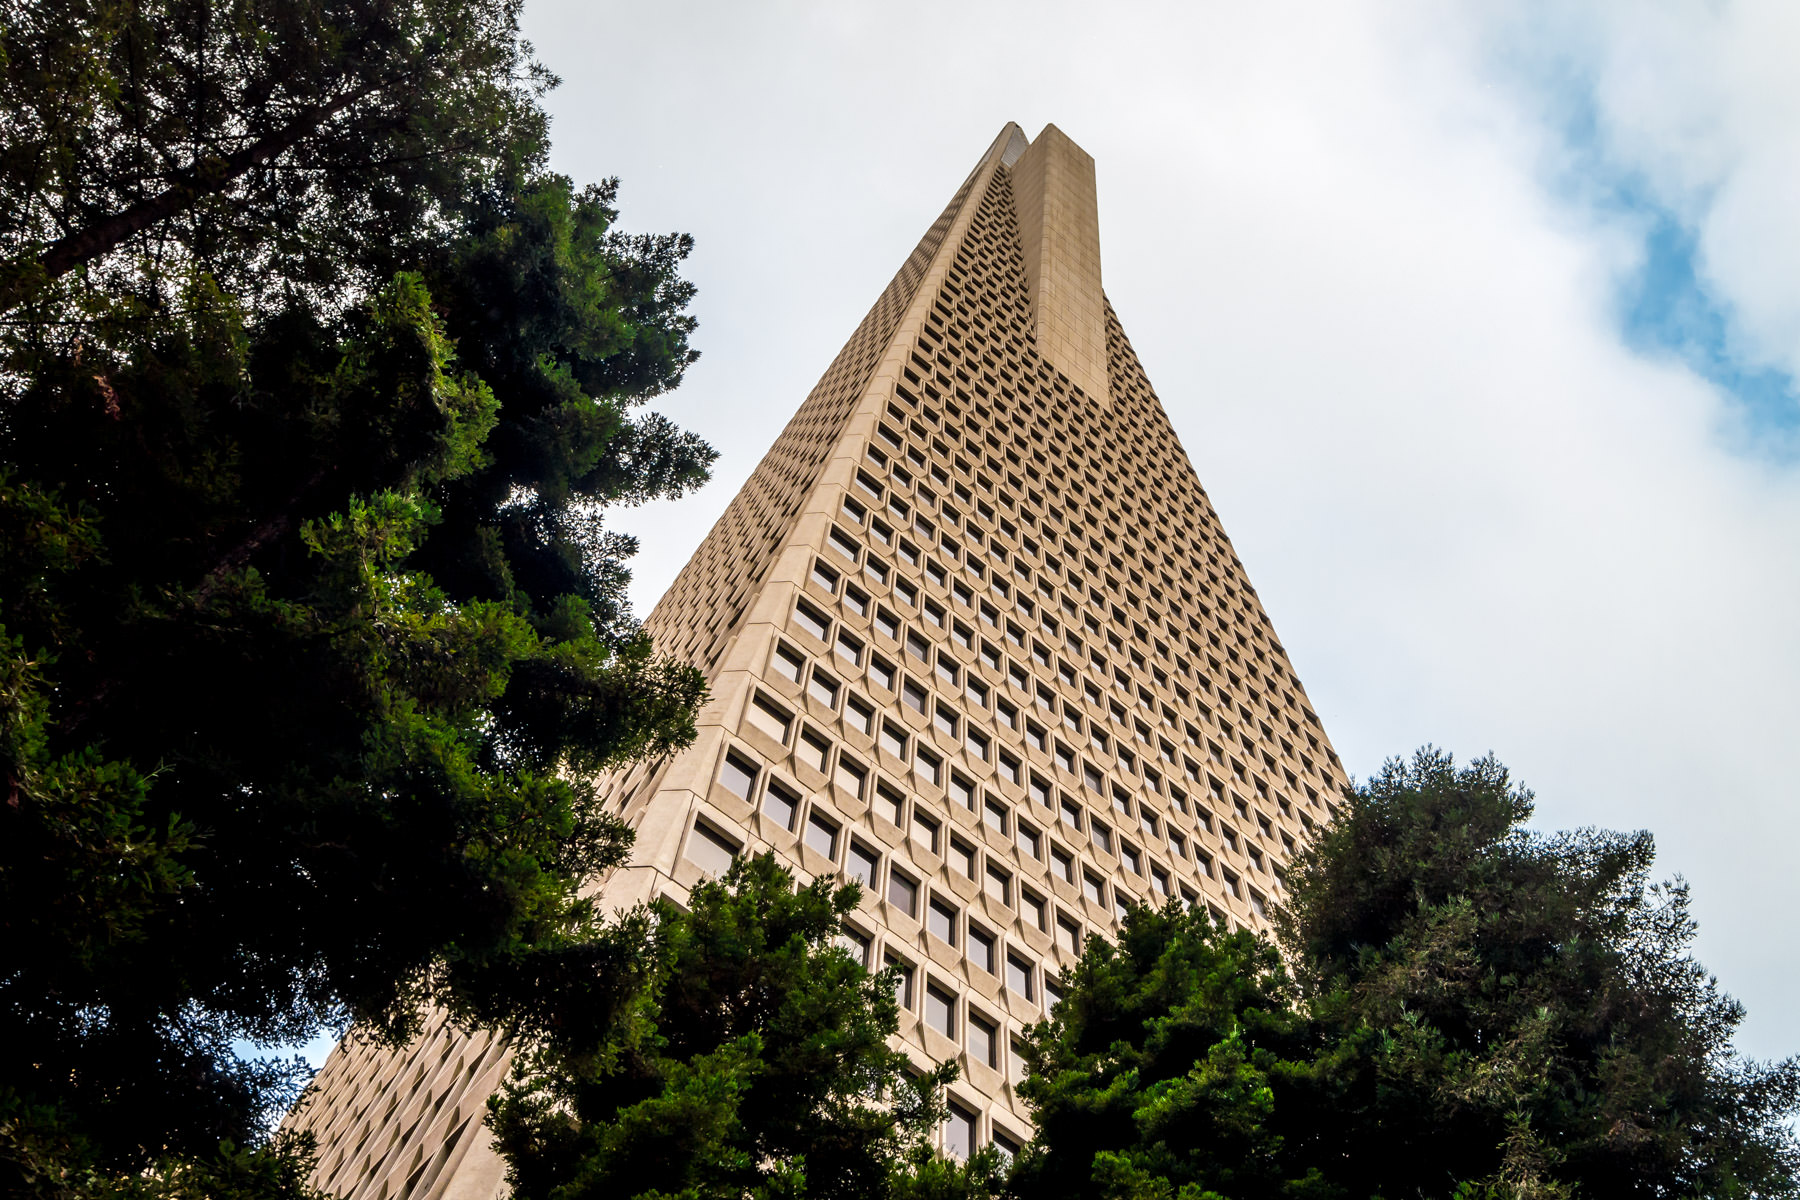 San Francisco's tallest building, the Transamerica Pyramid, rises above the neighboring Redwood Park into the grey Northern California sky.